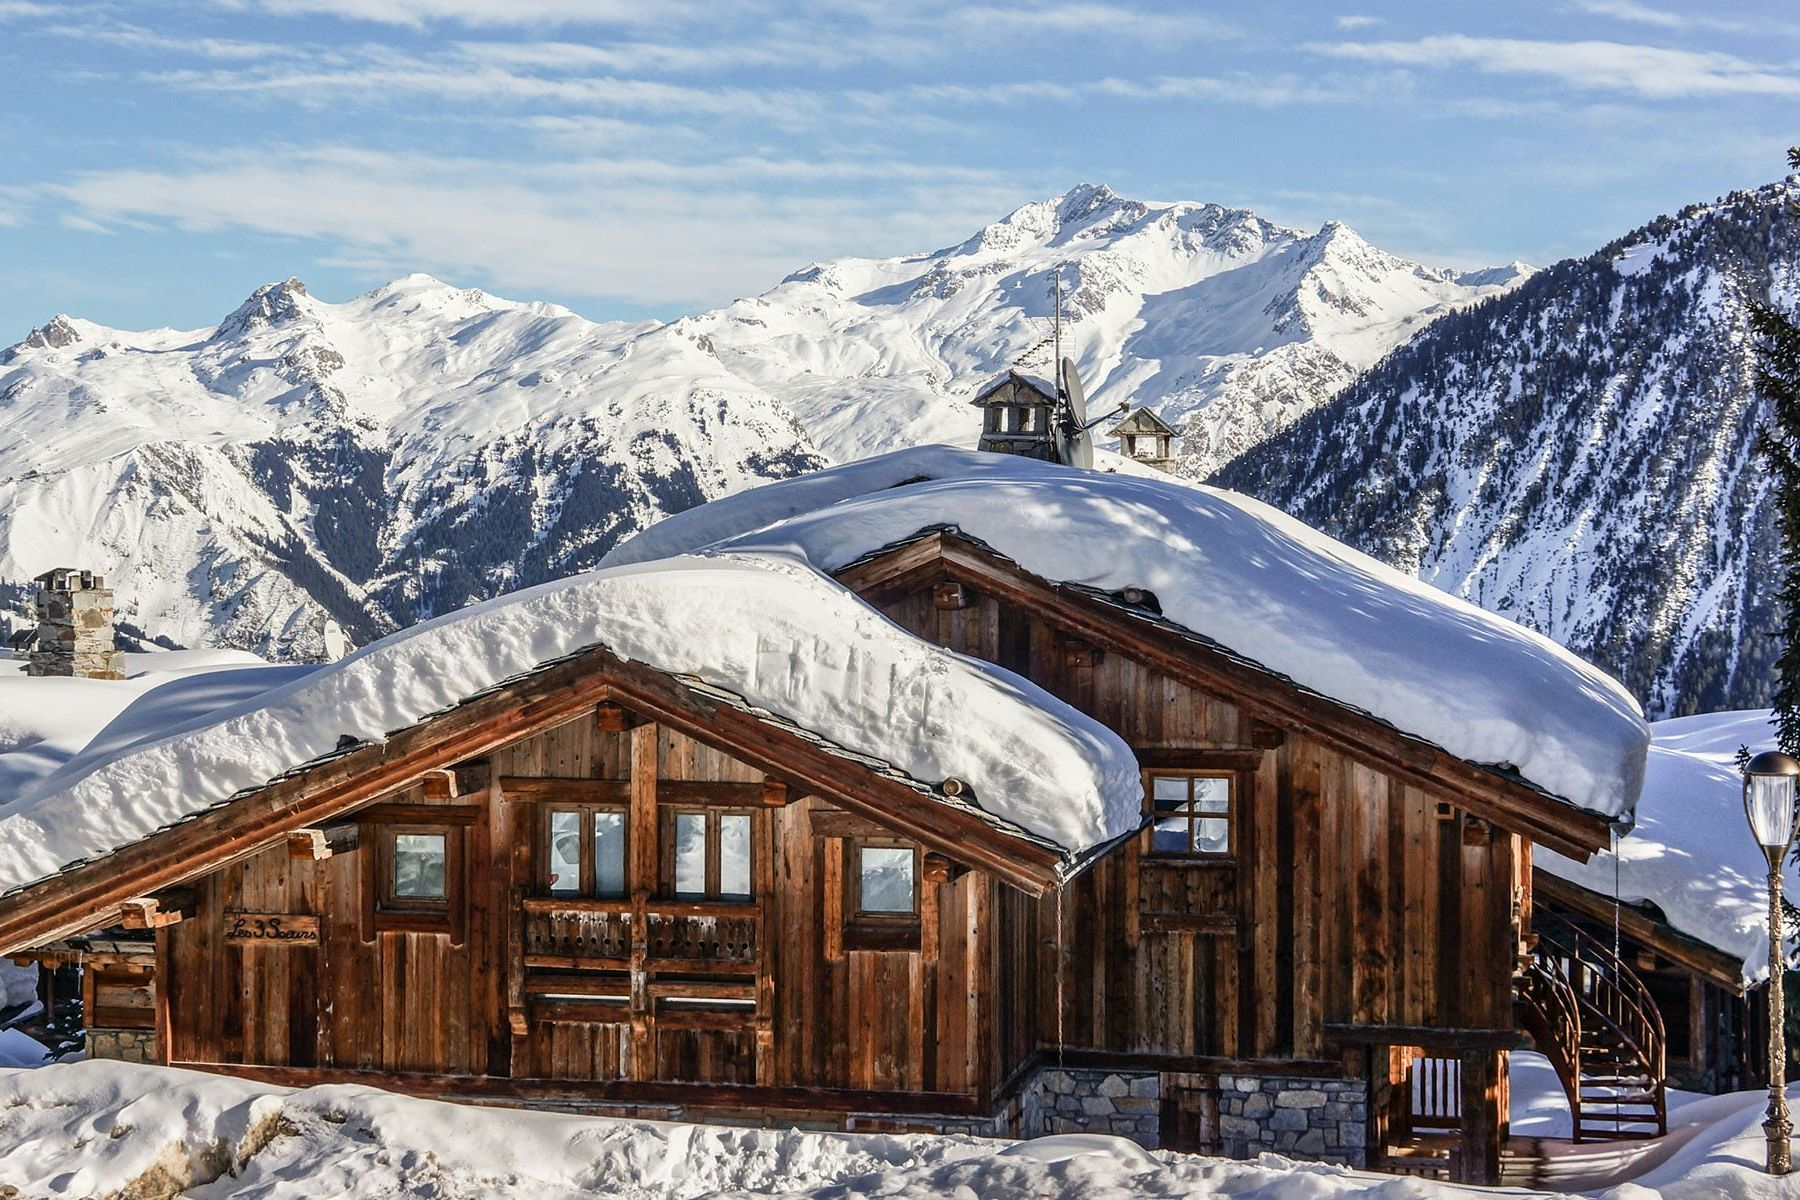 Single Family Home for Rent at Chalet for rent Courchevel Les 3 Soeurs Courchevel, Rhone-Alpes, 73120 France